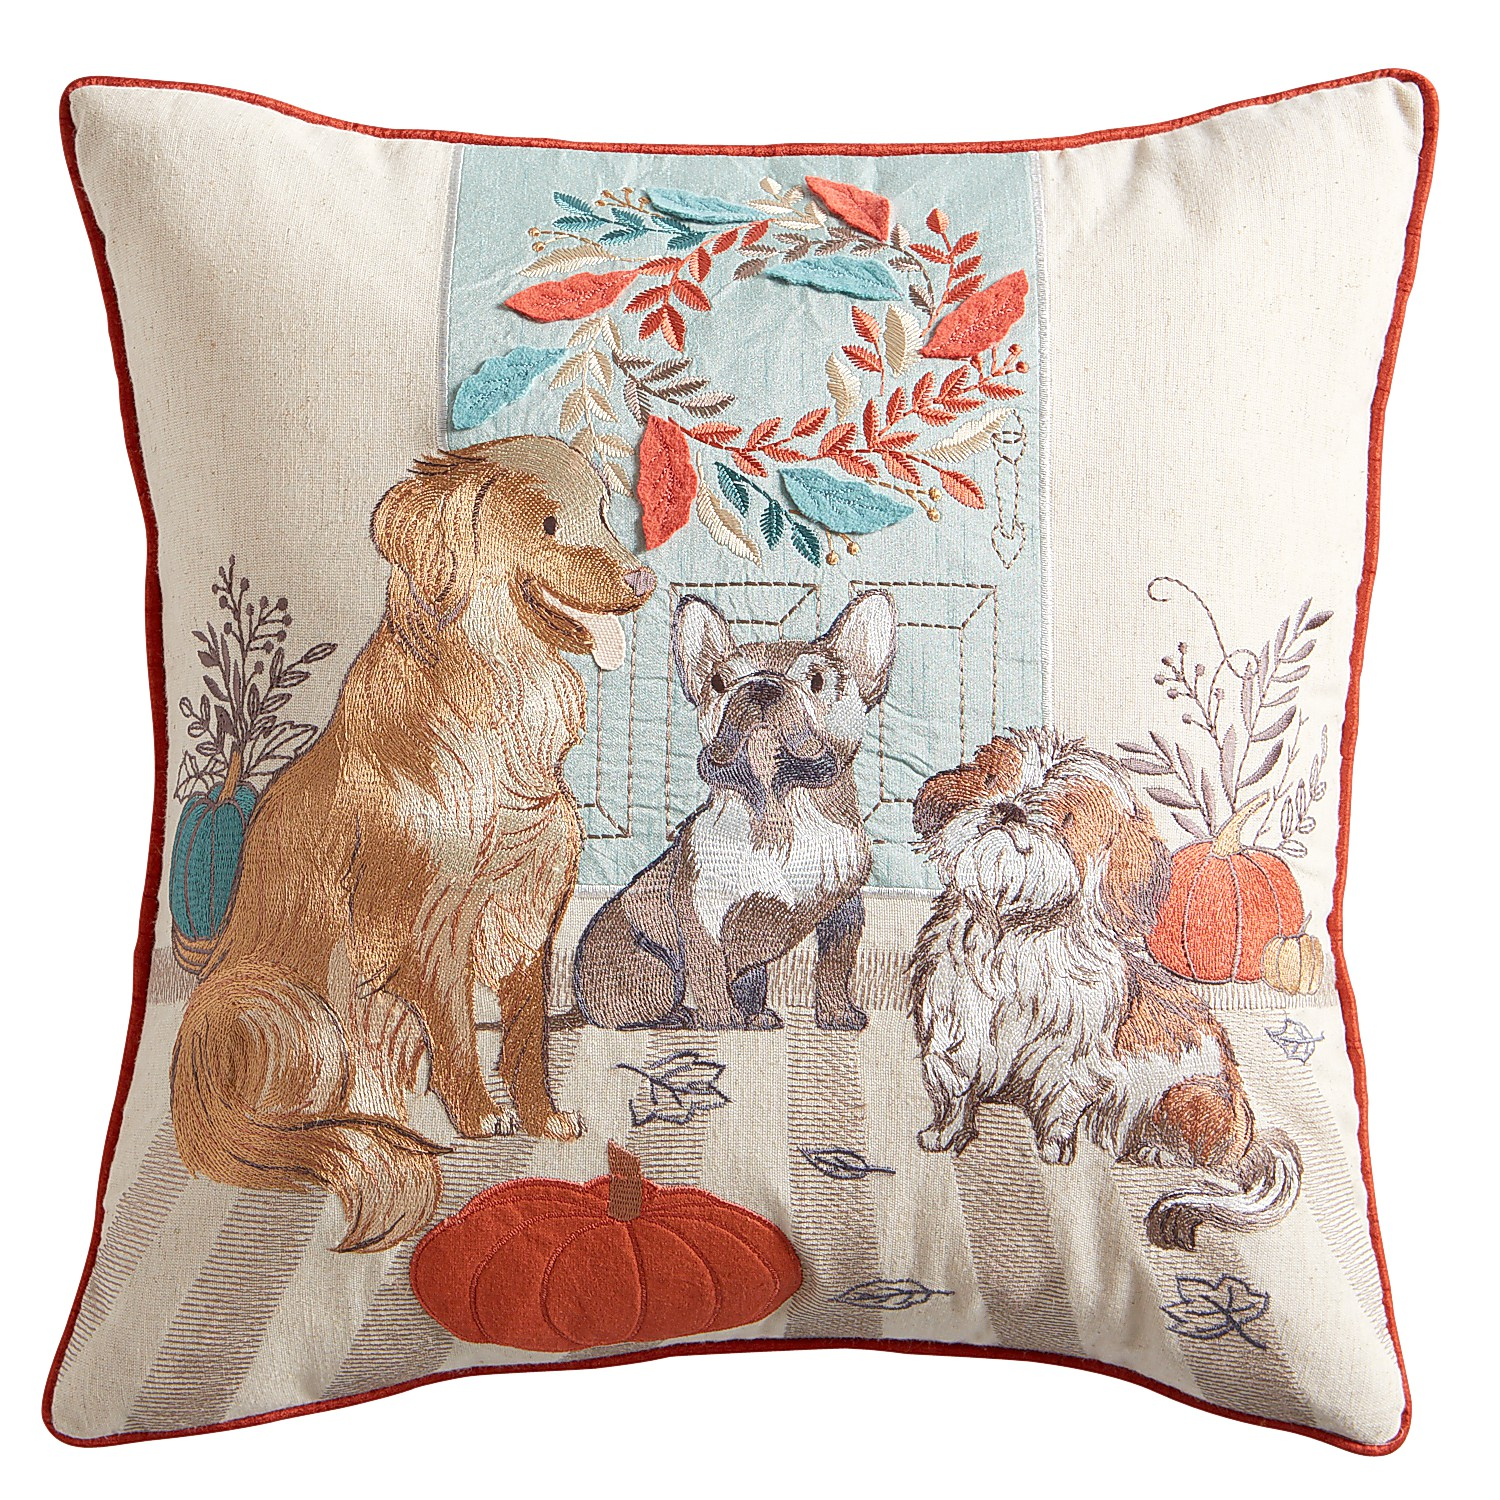 Harvest Dogs on Porch Pillow